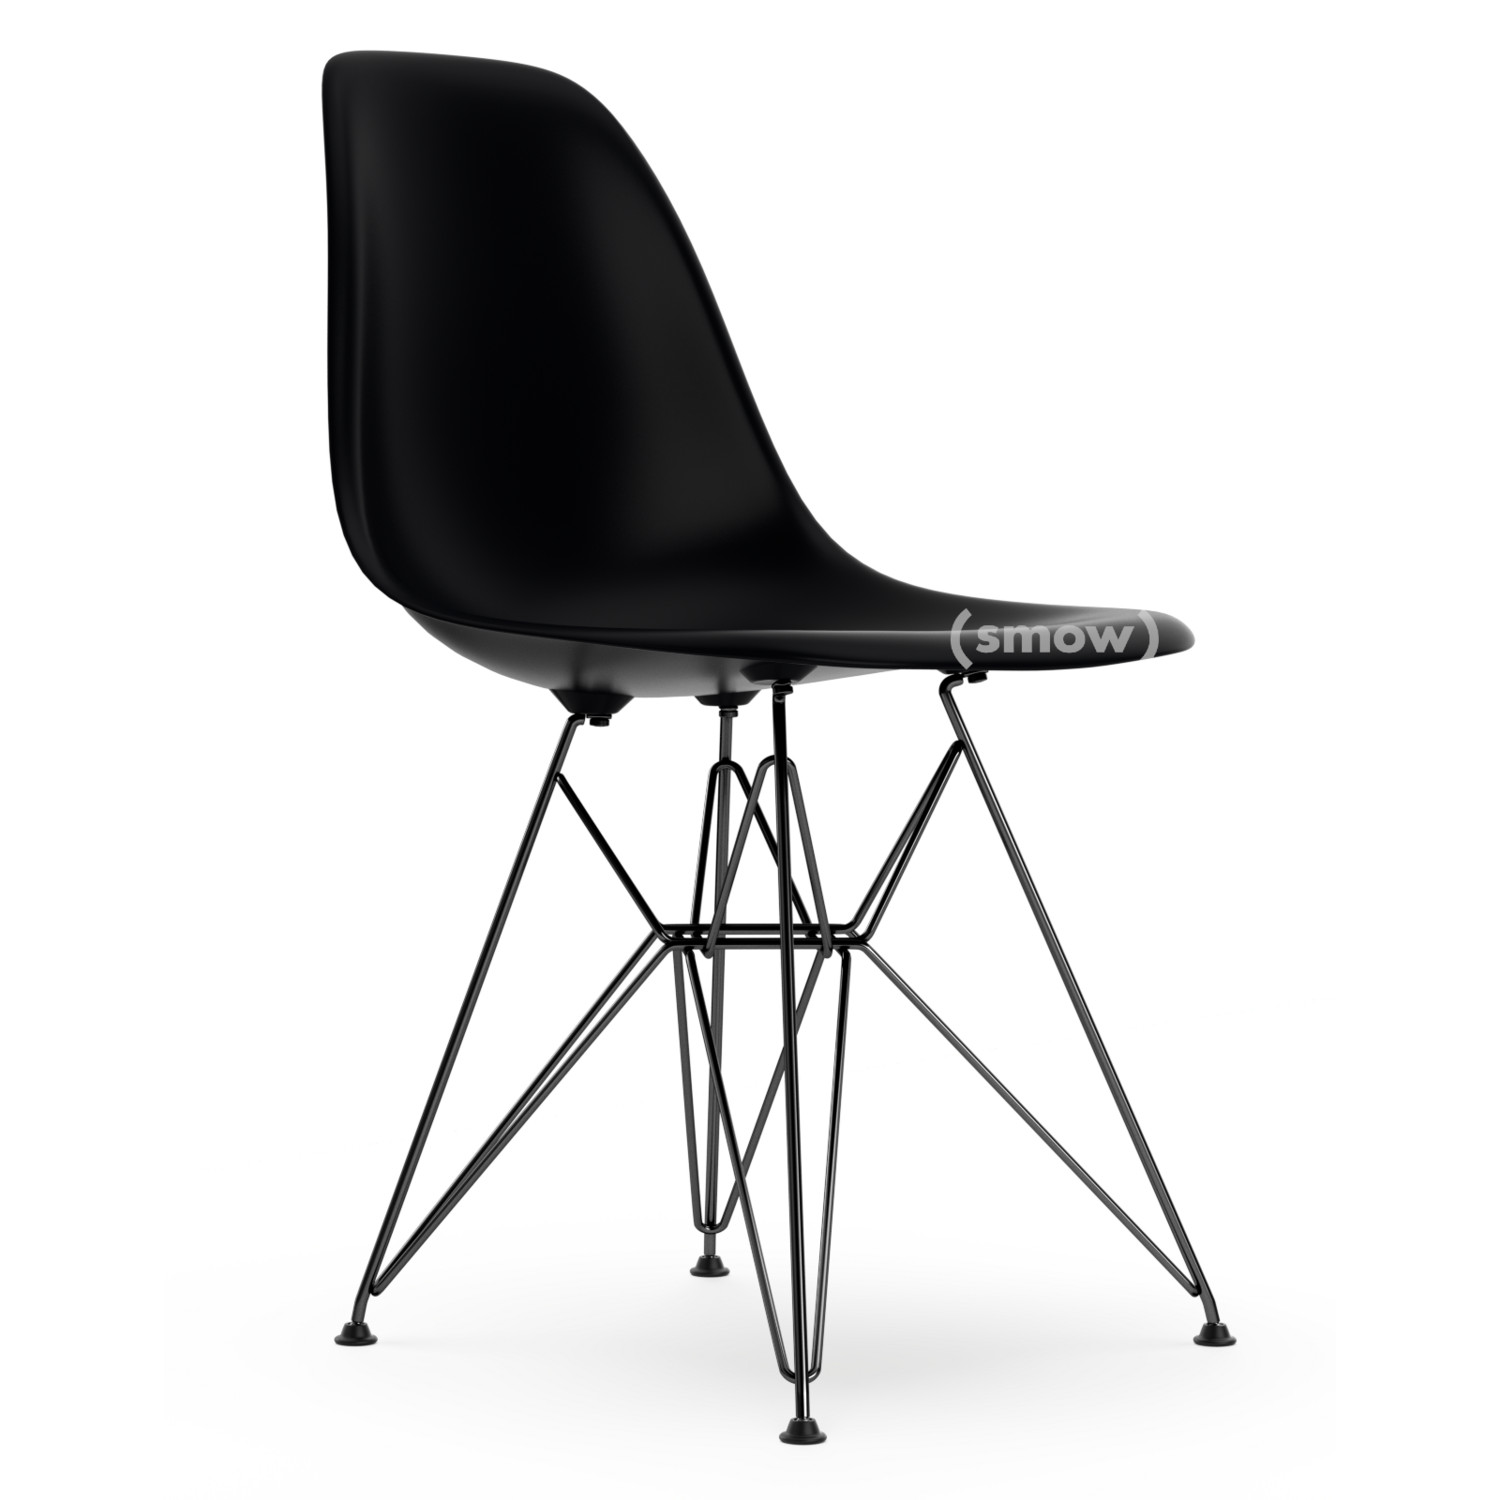 Eames Plastic Side Chair Dsr Basic Dark Without Upholstery Standard Version